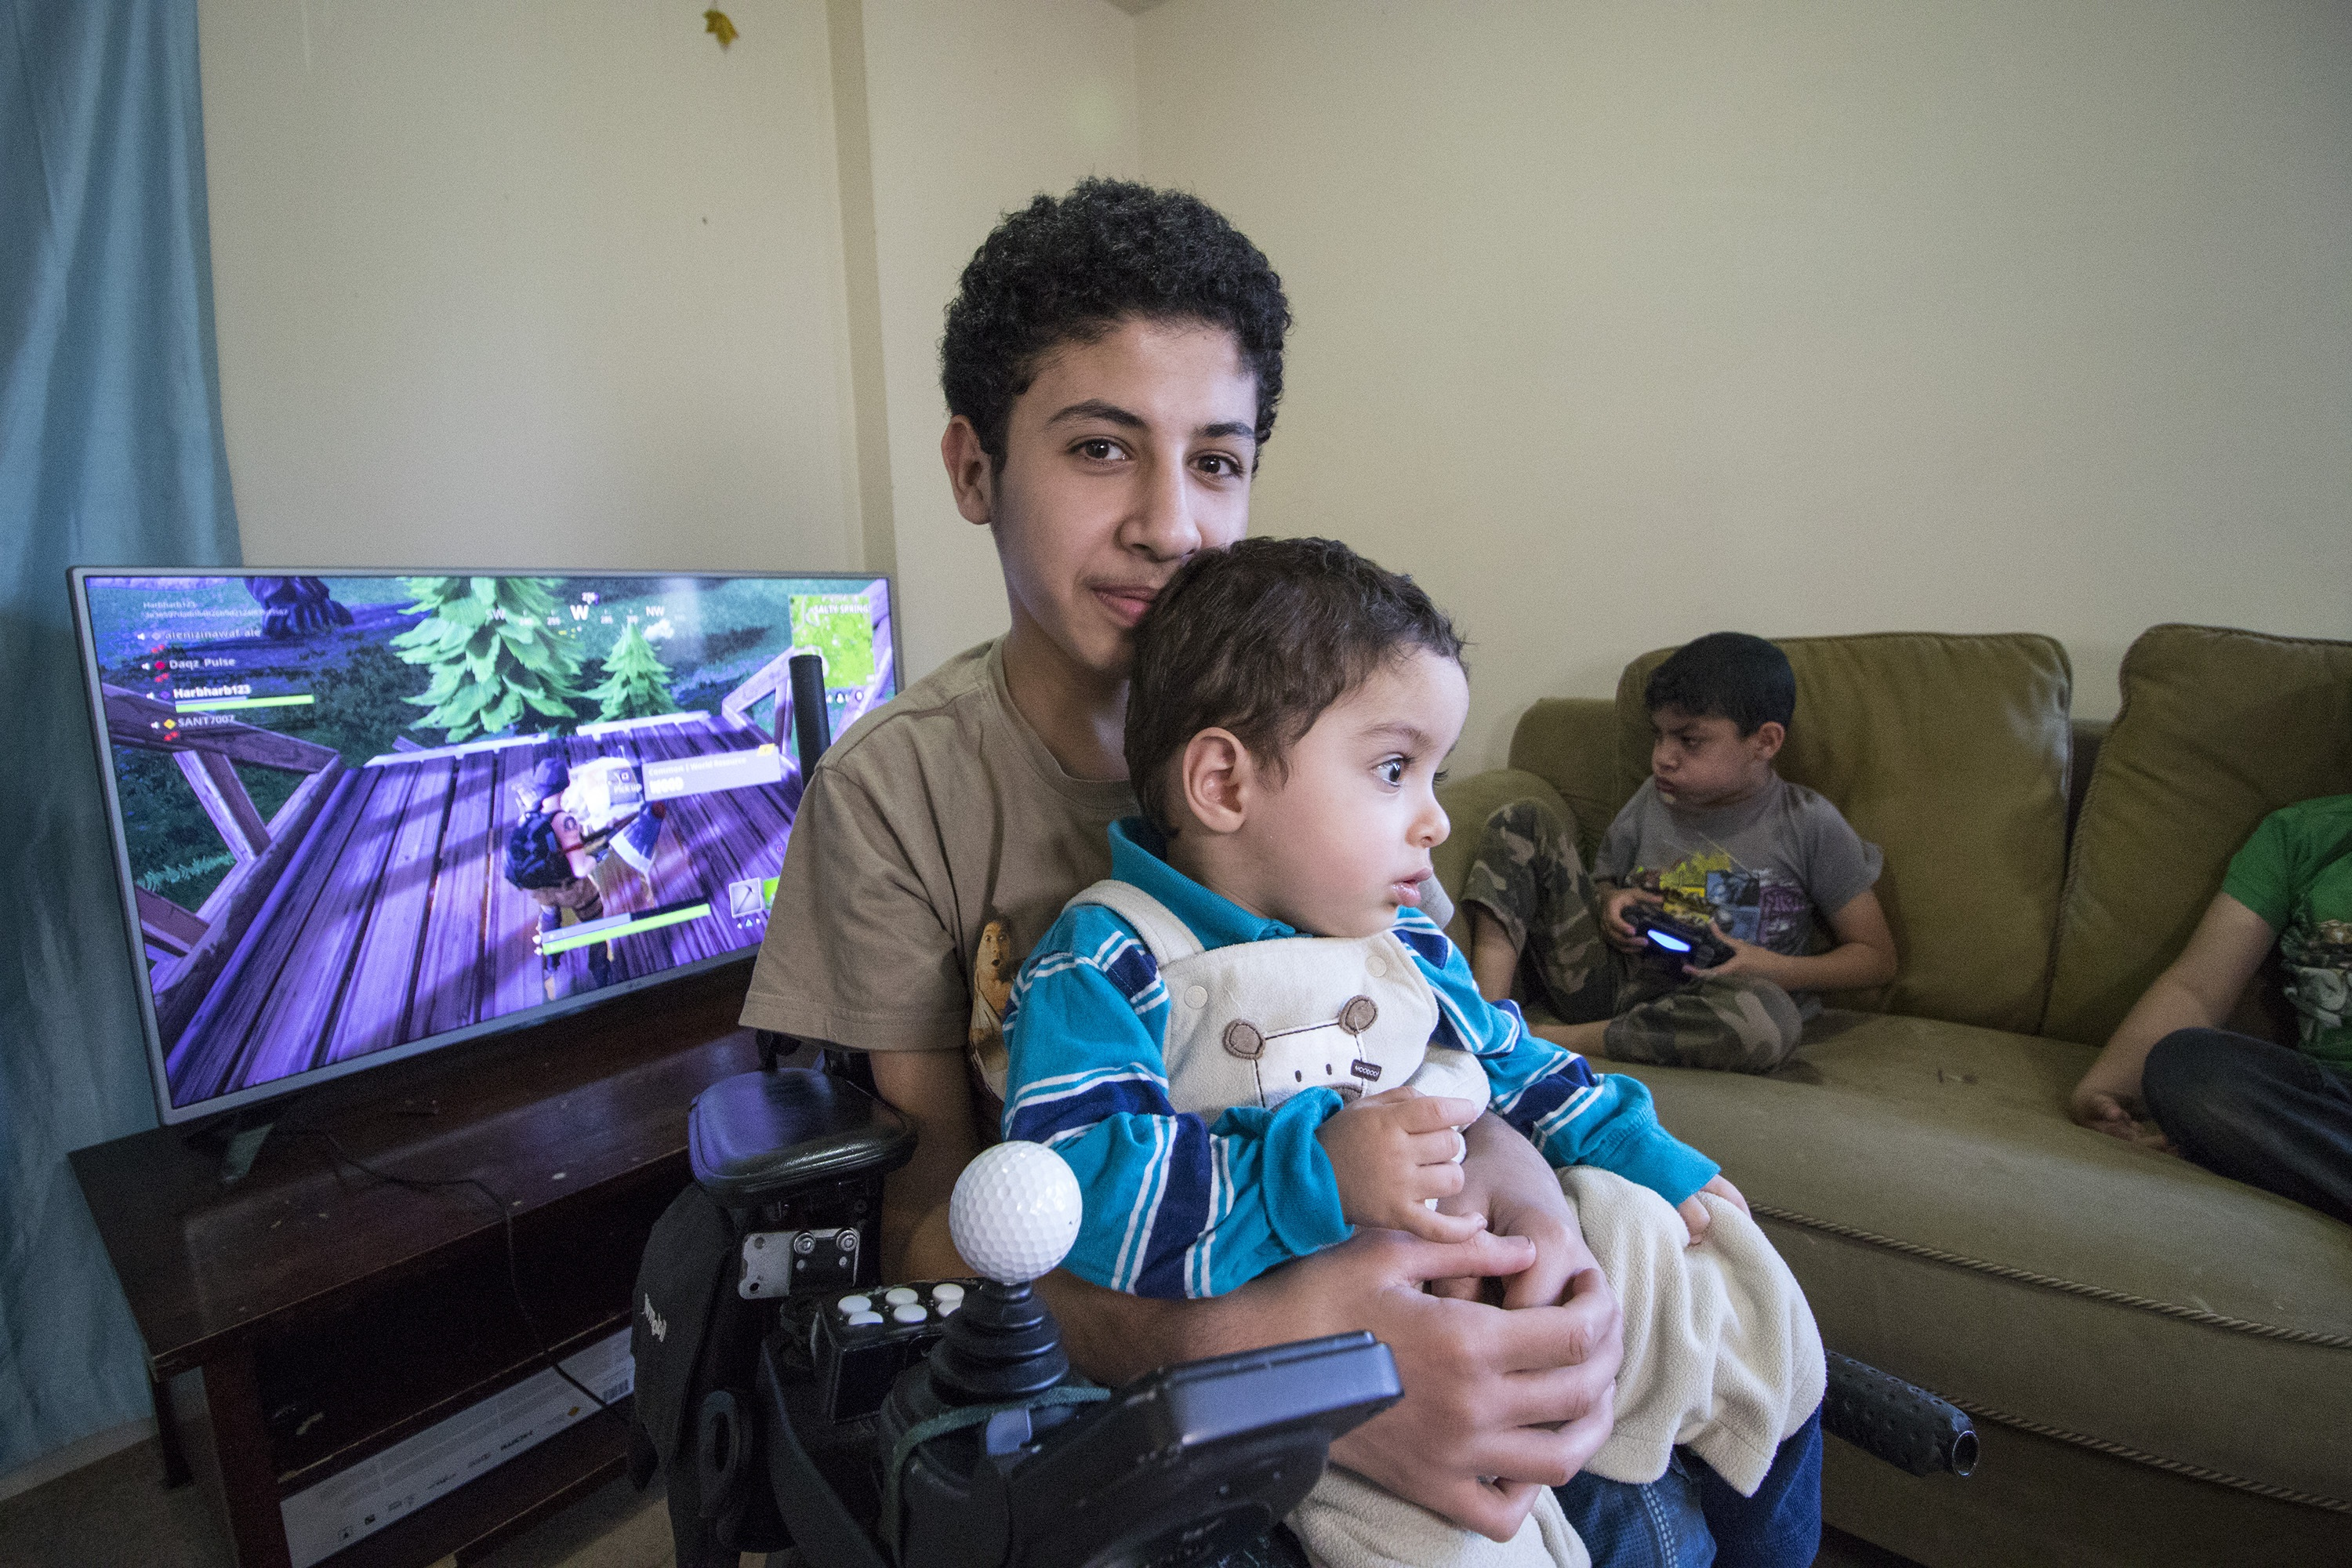 Maher holds Mias, who has also been diagnosed with muscular dystrophy. Younes is playing video games. (Dave Irish/CBC)